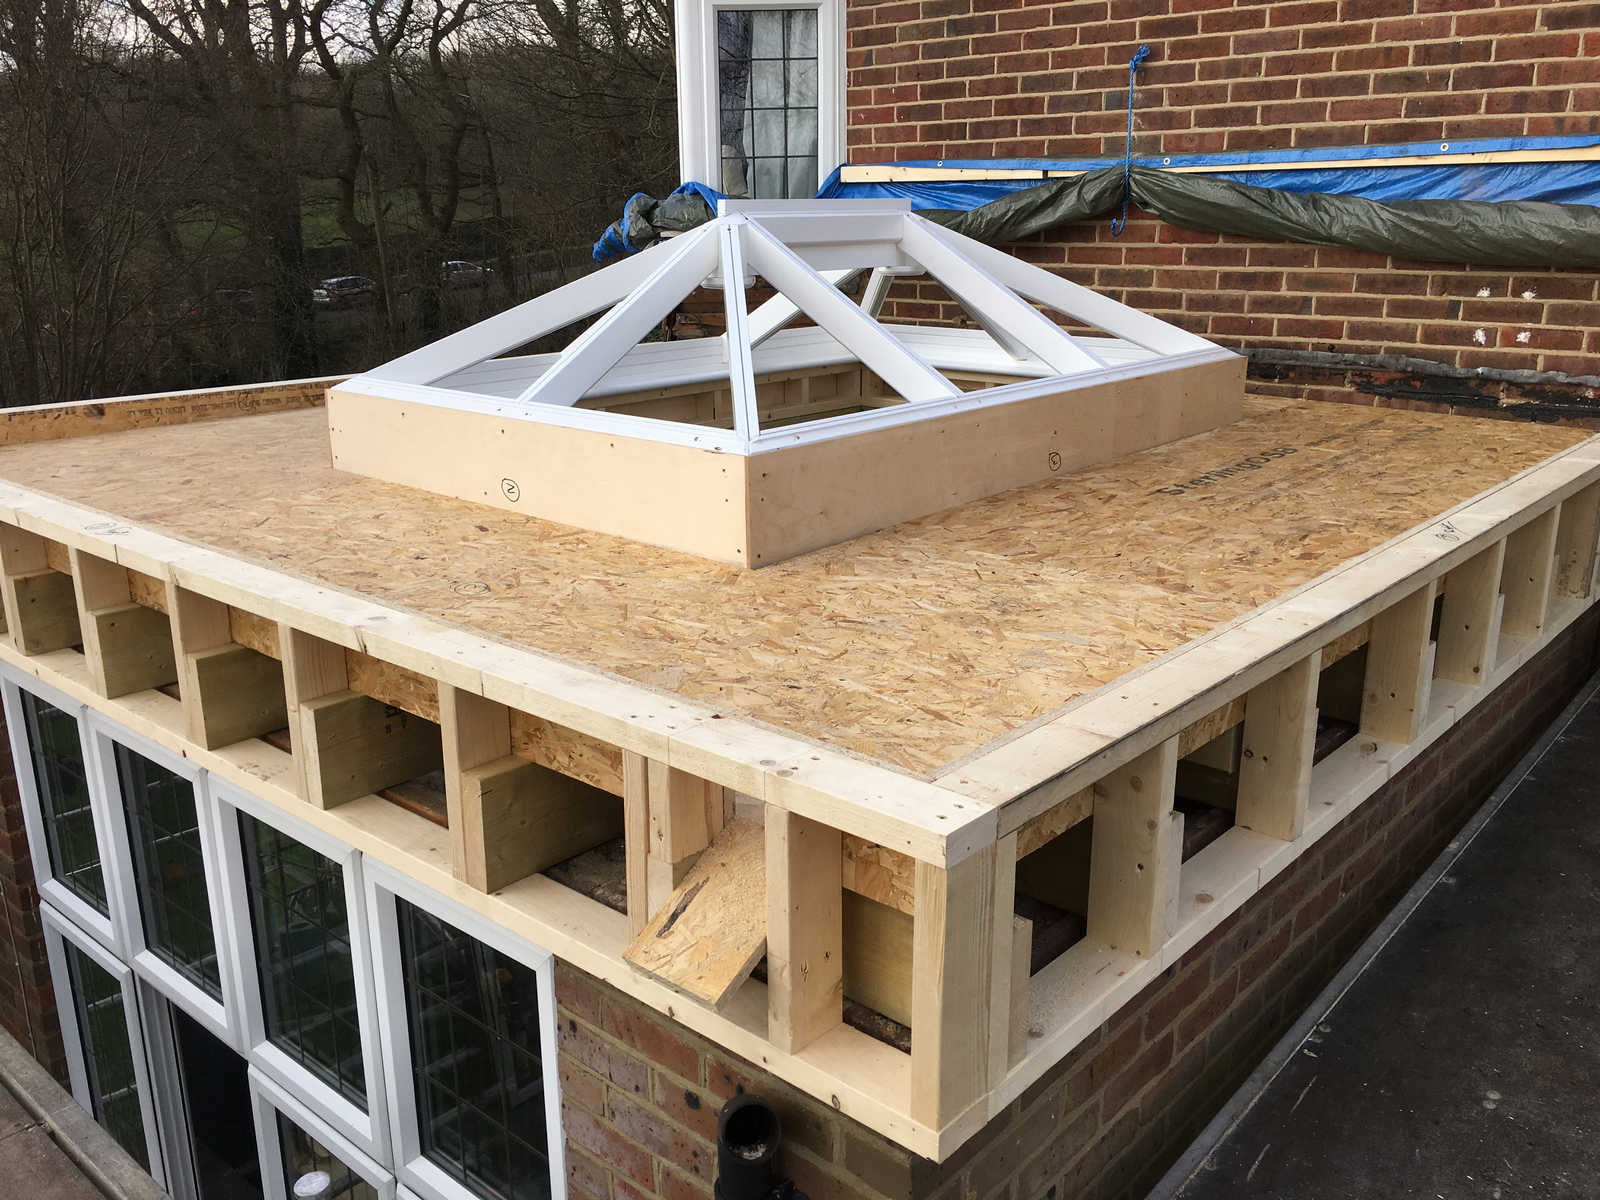 Timber flat roofs picture sc 1 st construction studies for Build best construction